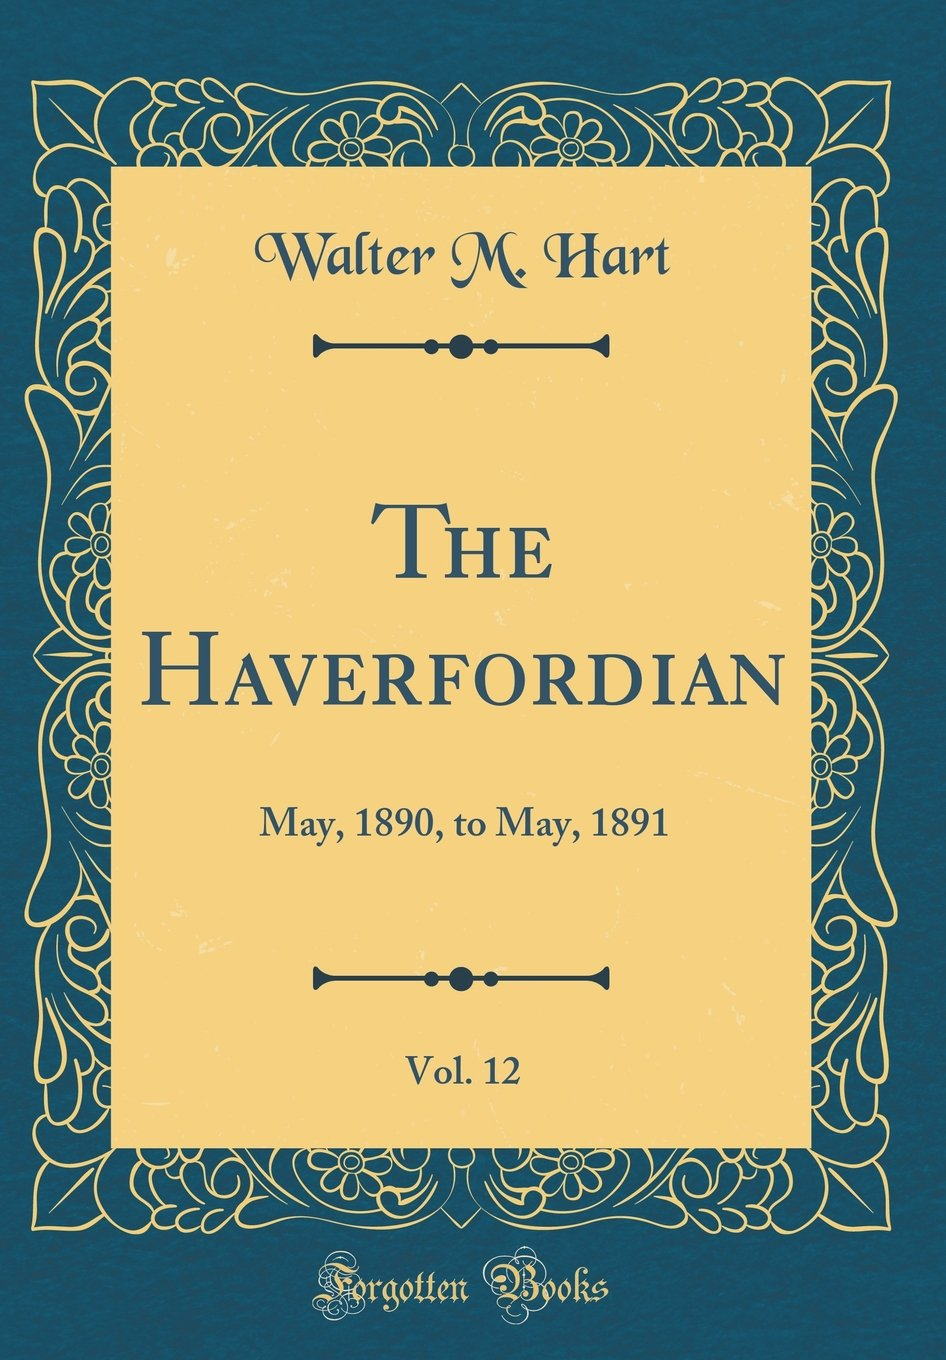 Download The Haverfordian, Vol. 12: May, 1890, to May, 1891 (Classic Reprint) ebook